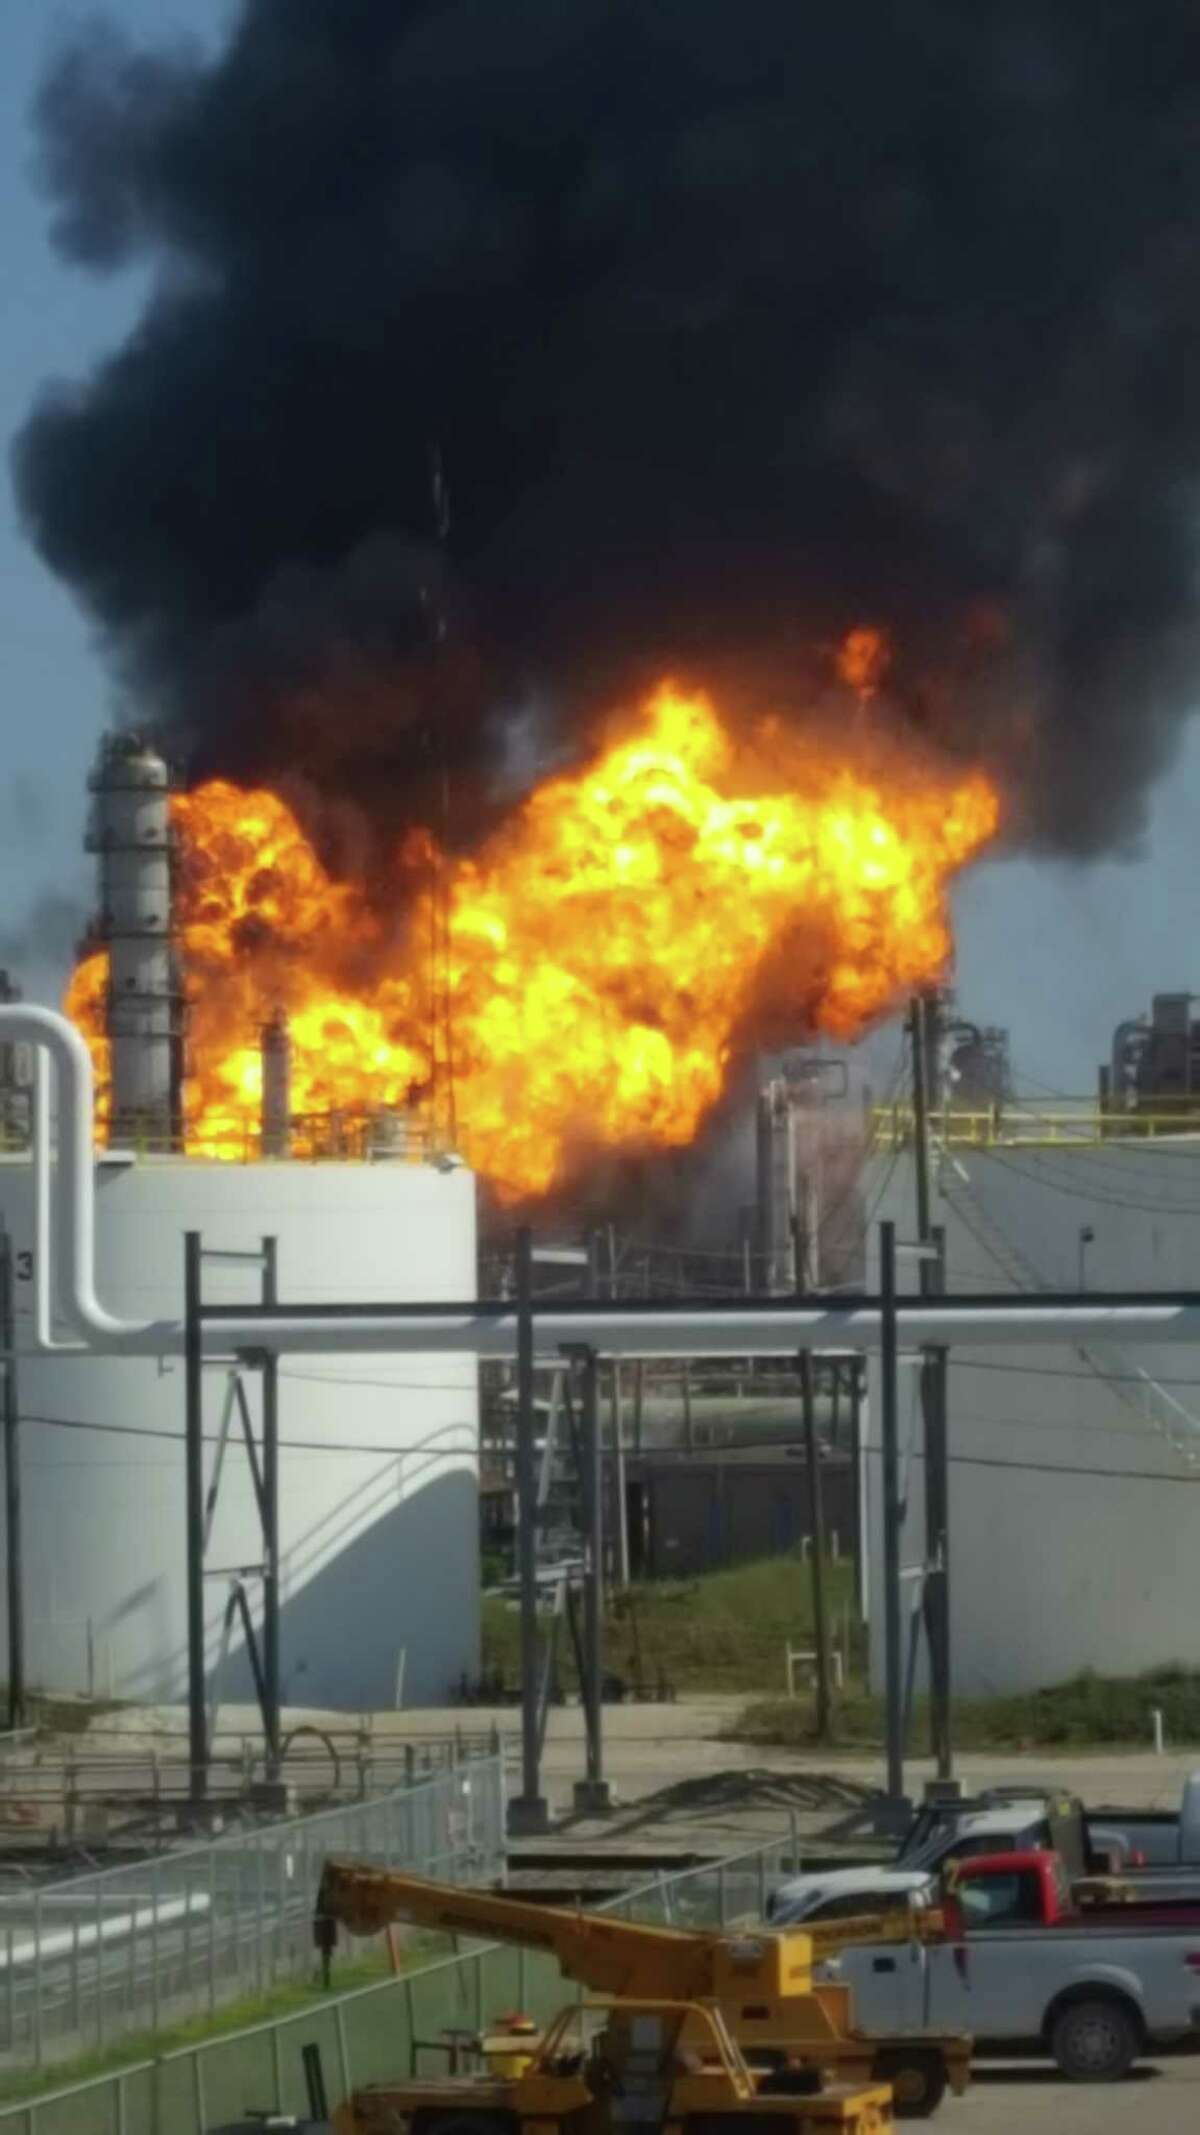 Flames and smoke can be seen April 19, 2018 after an explosion at Valero's Texas City refinery.